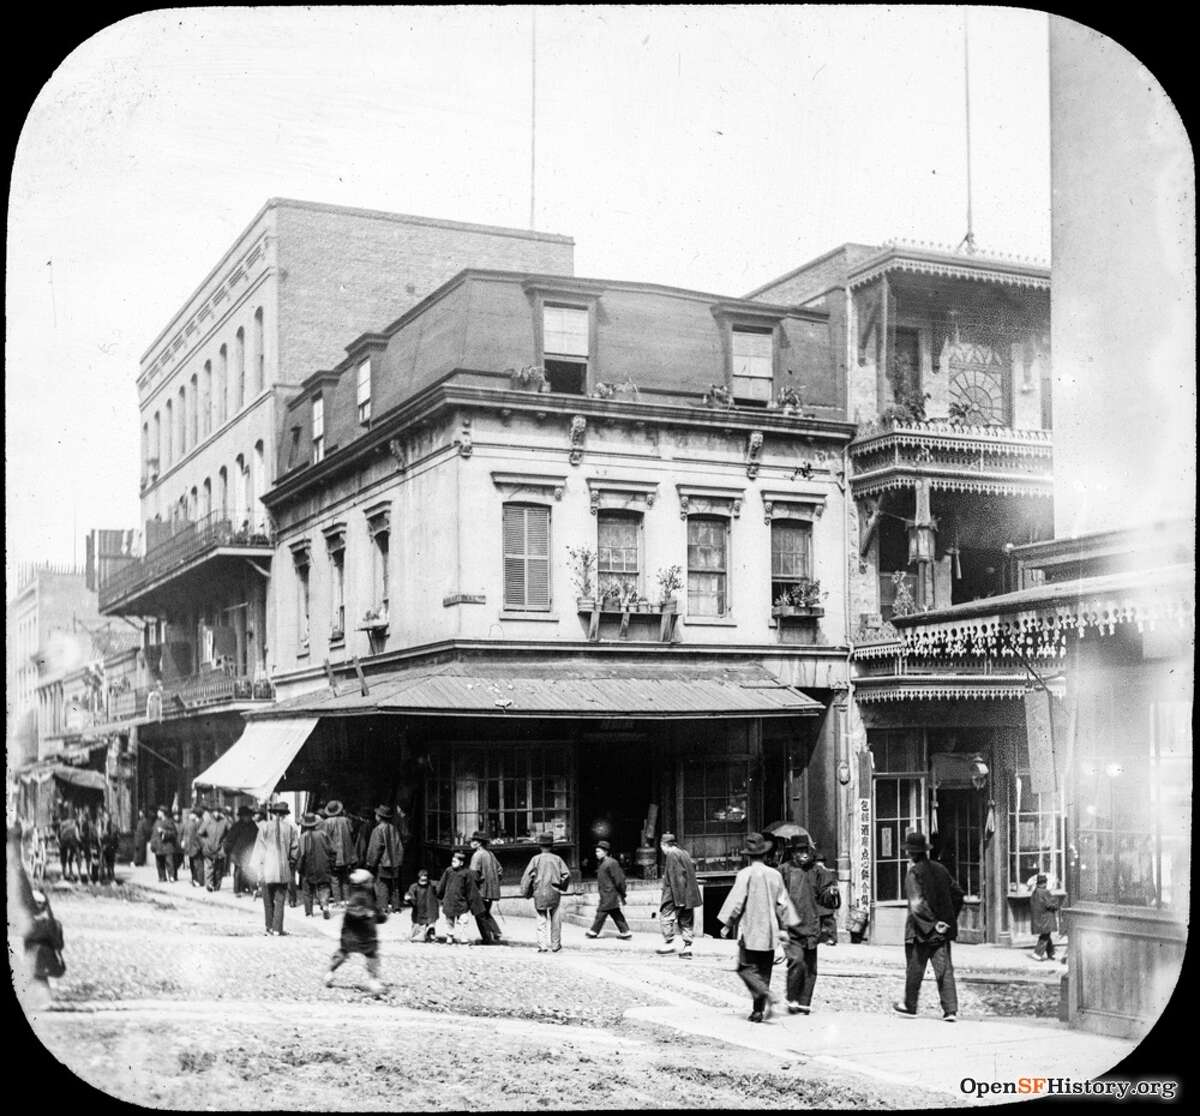 Clay St. and Waverly Place in 1900 Chinatown, view to northeast corner. Courtesy of OpenSFHistory.